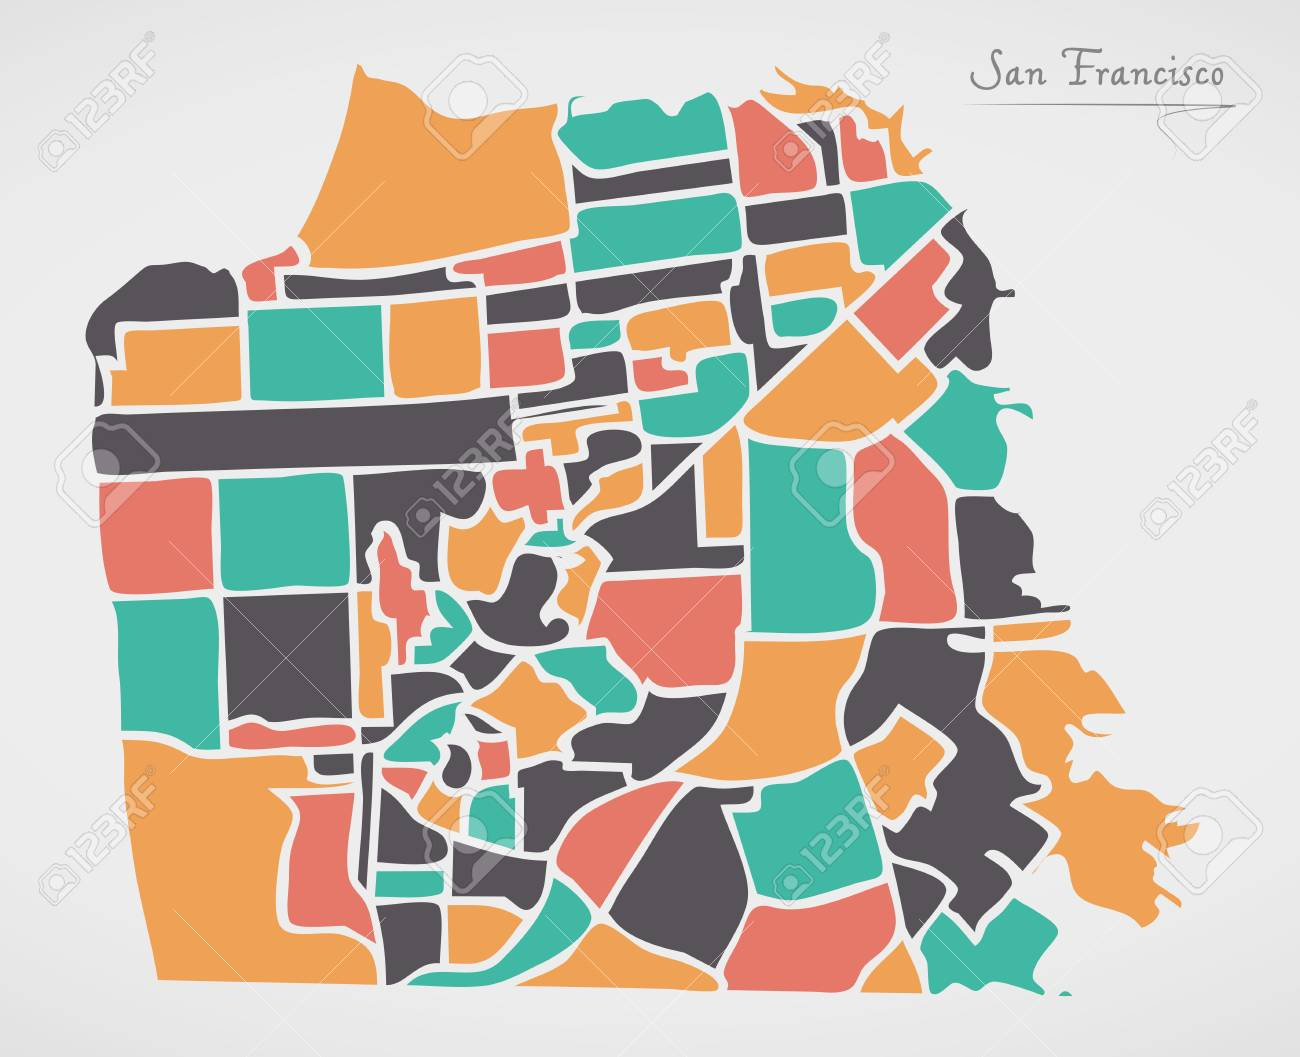 San Francisco Map With Neighborhoods And Modern Round Shapes Royalty